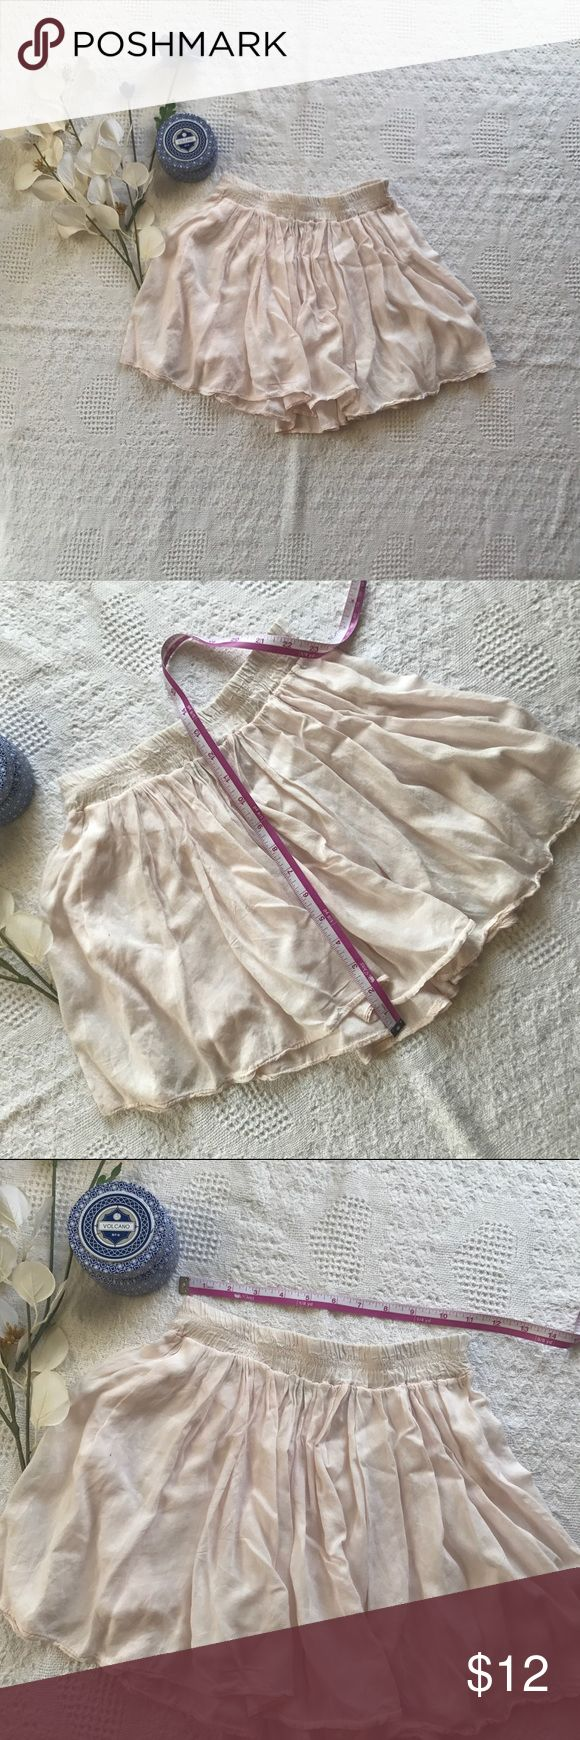 Brandy Melville Pale Pink Pleated Mini skirt Light weight, adorable light pink Brandy Melville mini skirt! -in excellent condition, worn once but sadly way too short for me -would fit an XXS/XS best, although it is labeled one size fits all -measurements pictured -perfect for this summer!  Offers are always welcome! Brandy Melville Skirts Mini